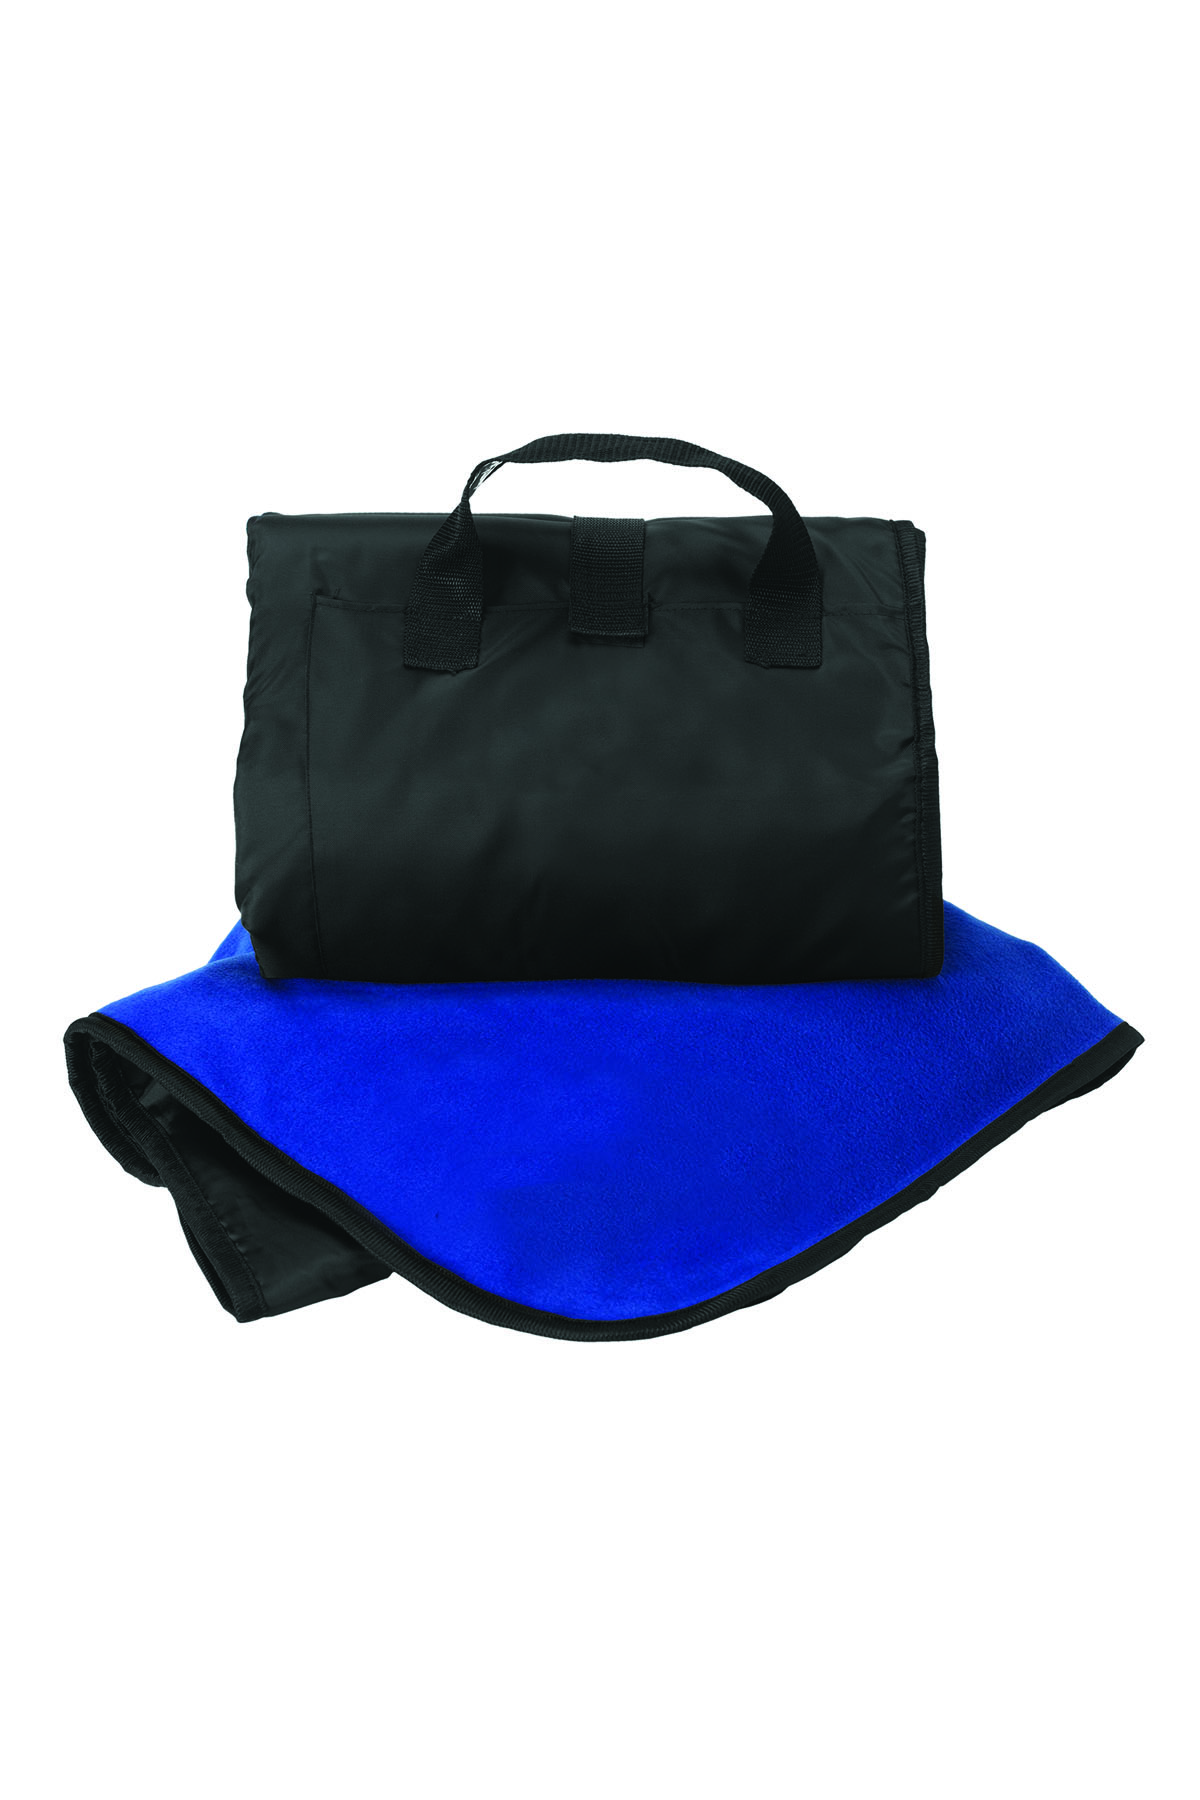 Vantage 0609 - Packable Vantek Fleece Blanket